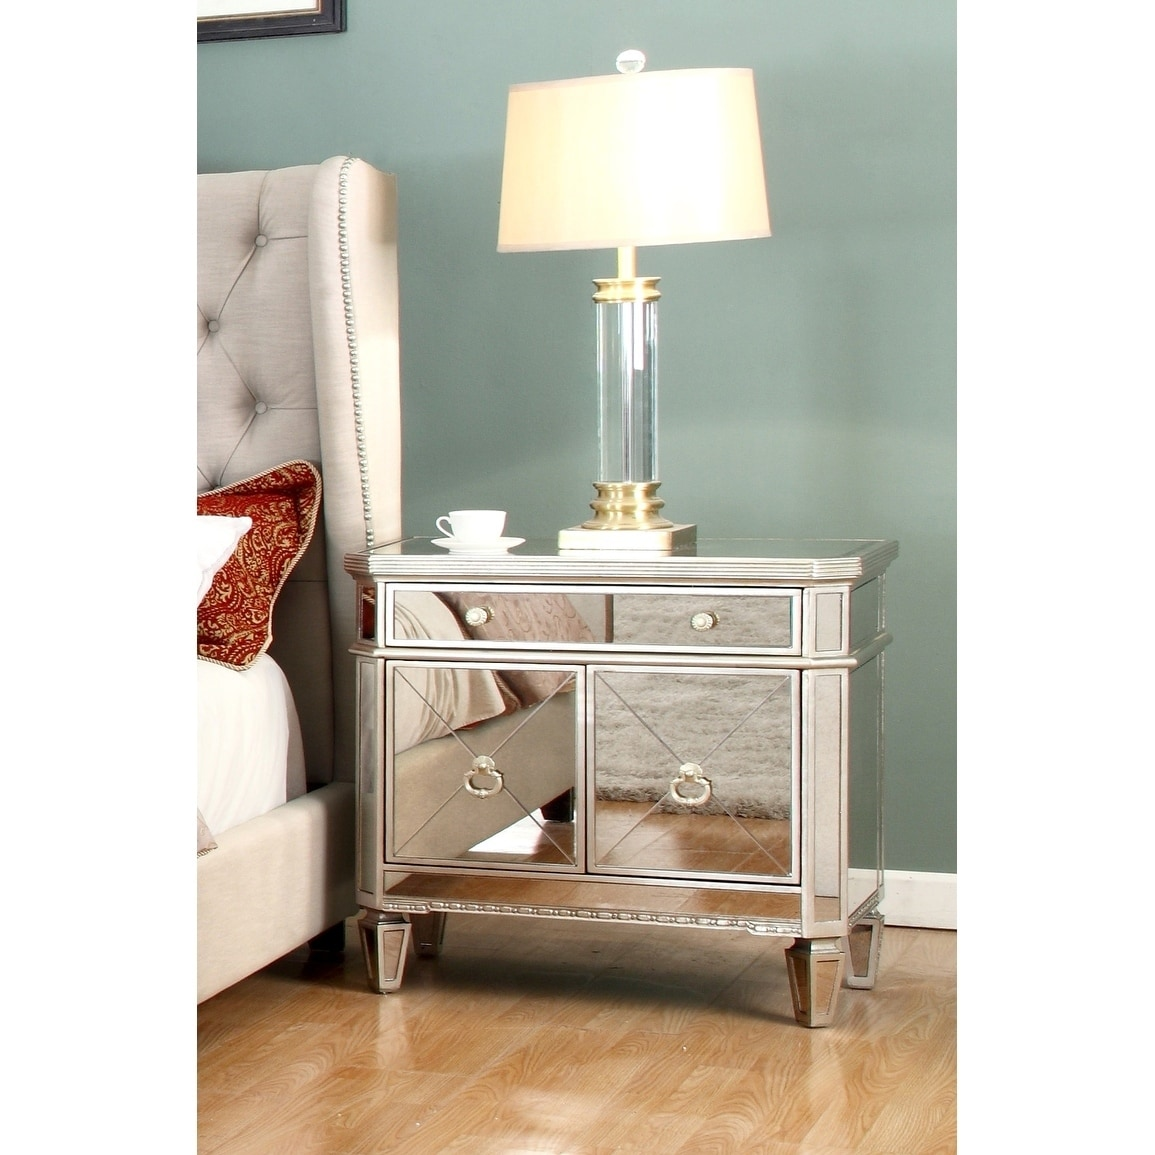 Best Master Furniture Silver With Gold 1 Drawer Nightstand